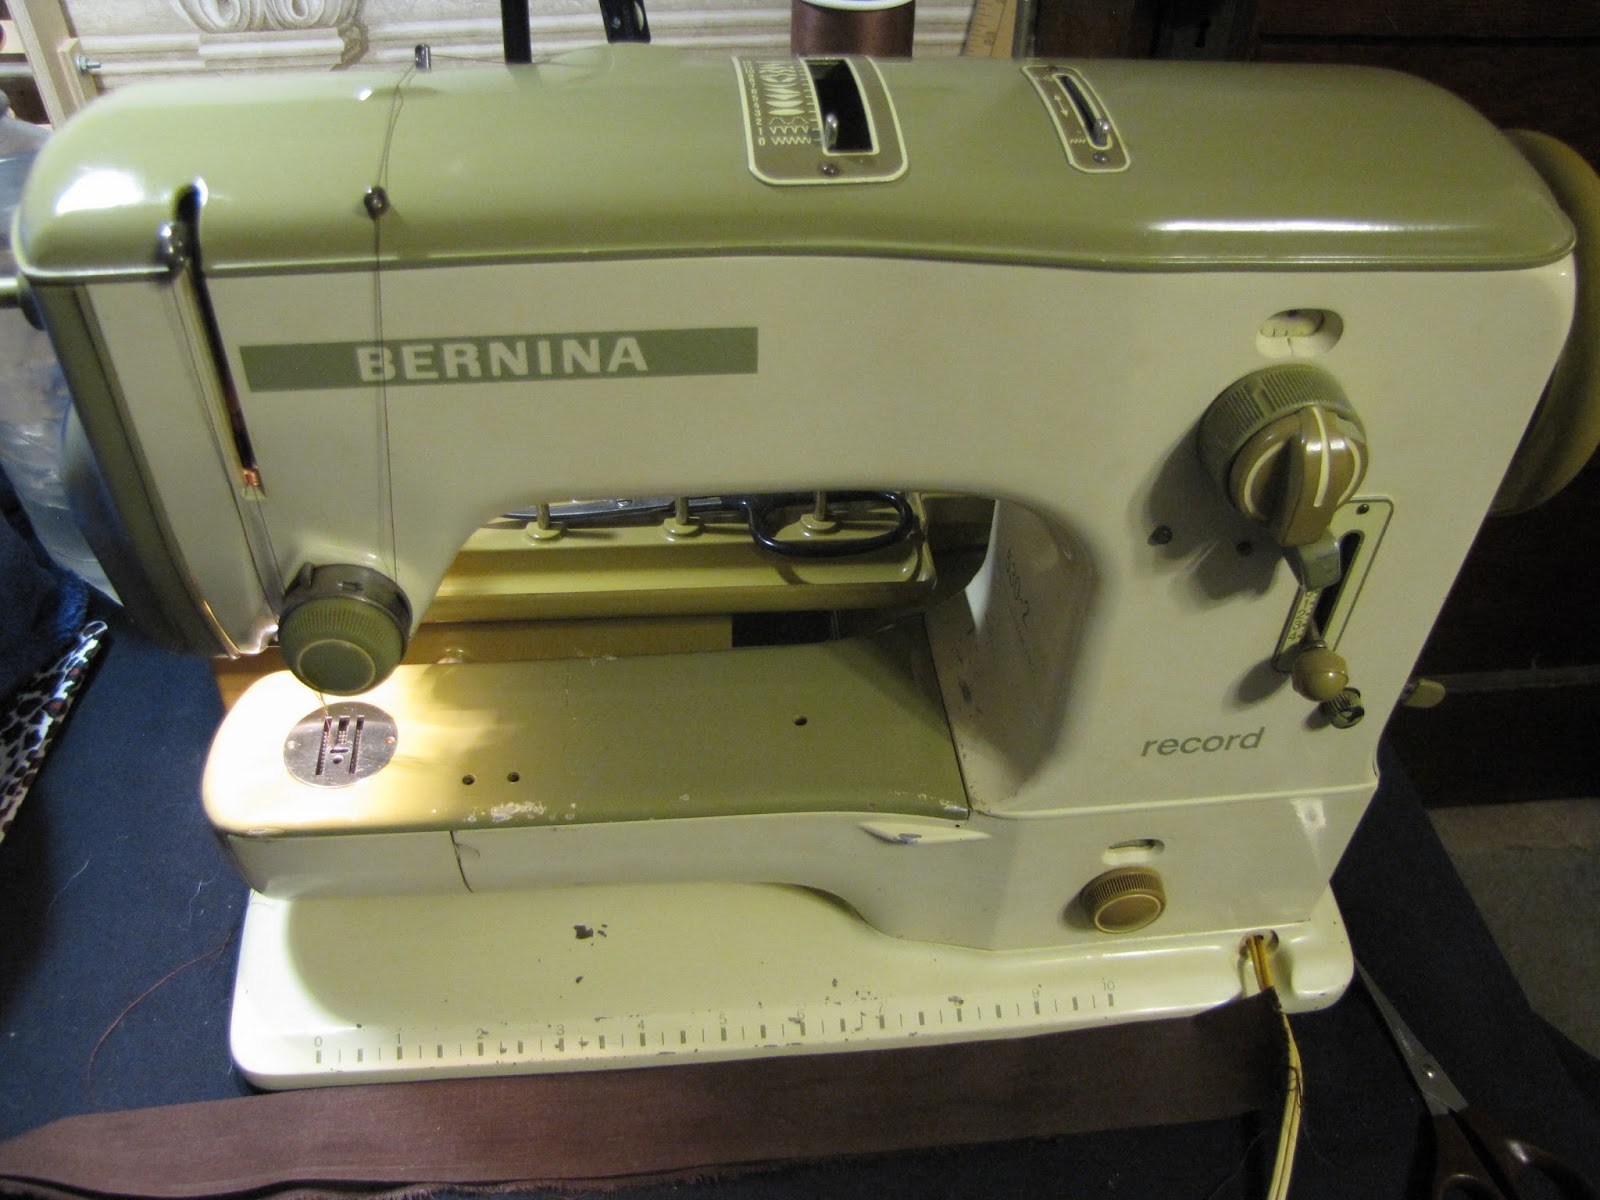 hight resolution of vintage sewing machines bernina sewing machine jpg 1600x1200 used bernina sewing machines sale